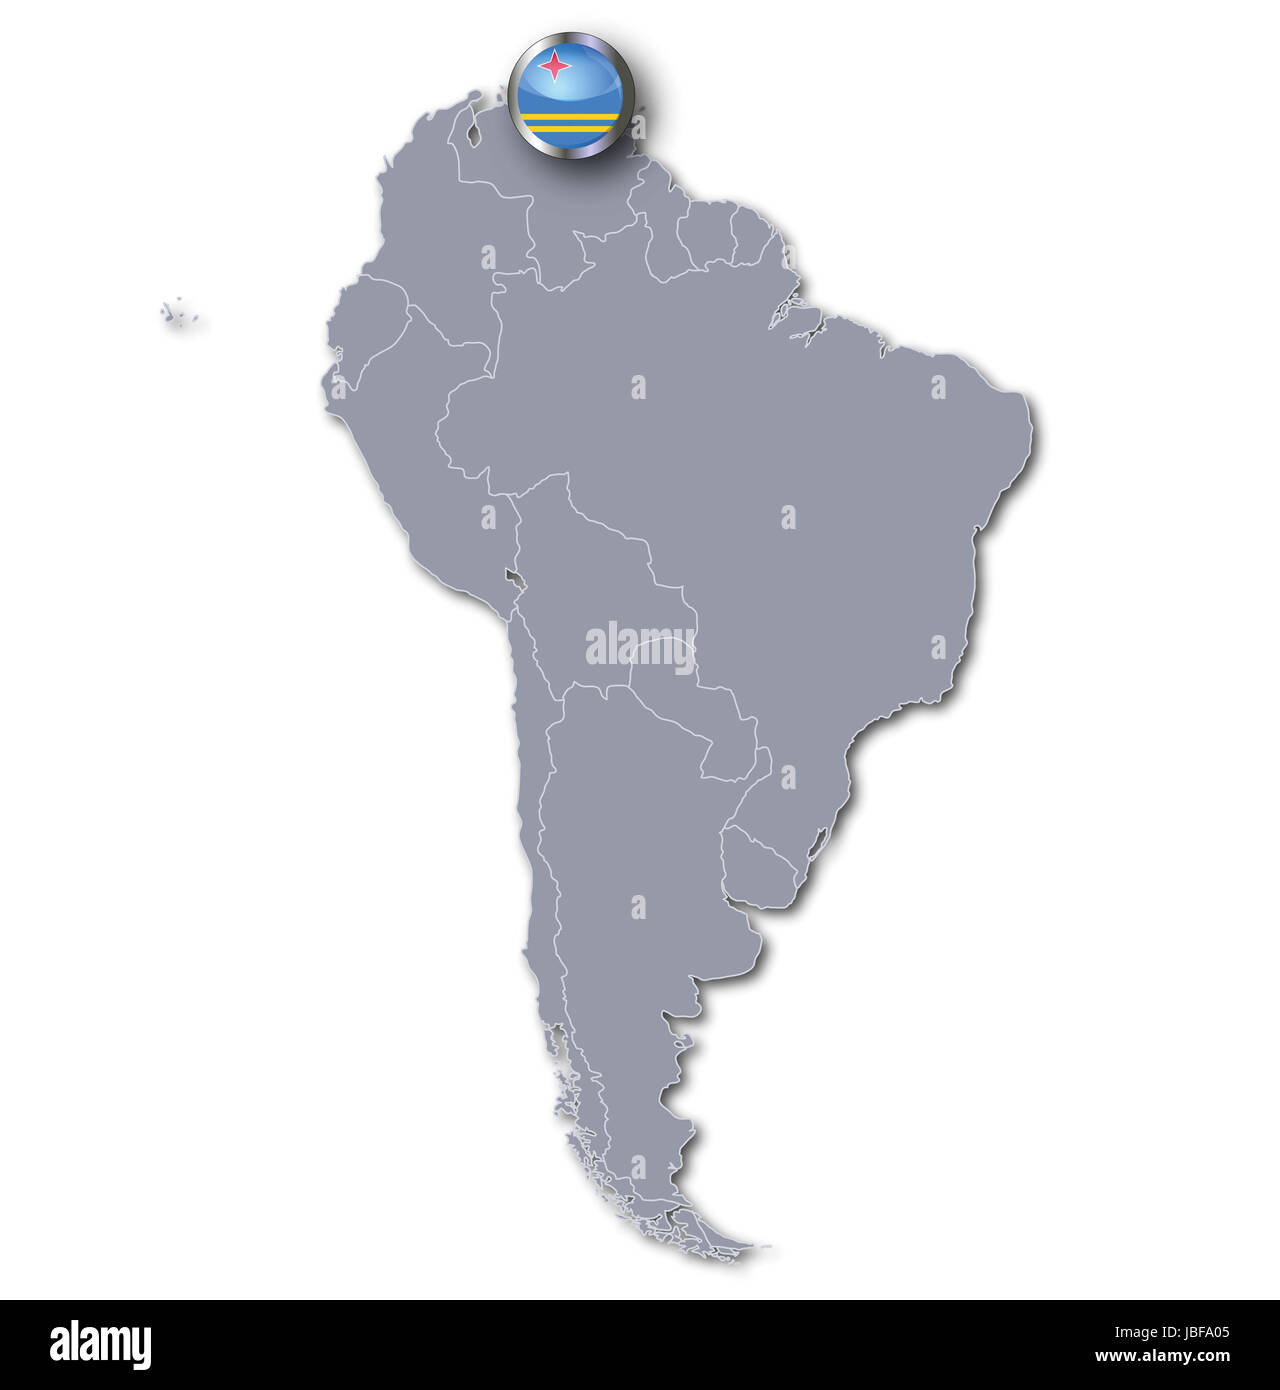 south america map with aruba Stock Photo: 144781285 - Alamy